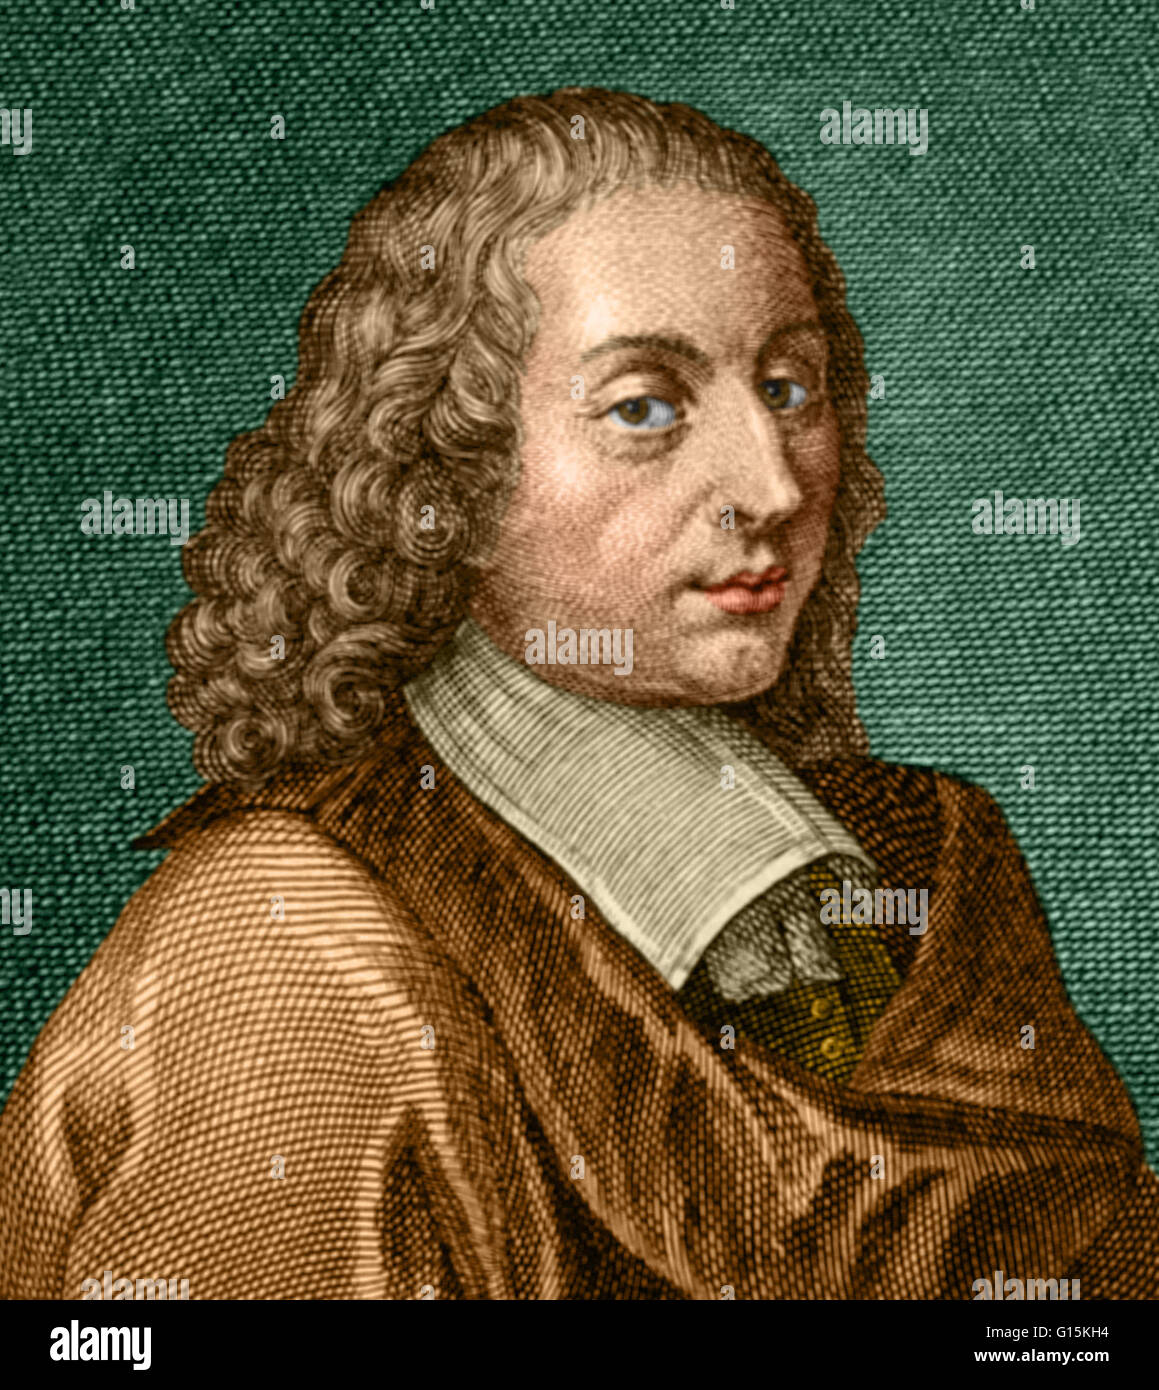 Color enhanced portrait of Blaise Pascal (1623-1662), a French  mathematician, physicist, inventor, writer, Catholic philosopher and child  prodigy.